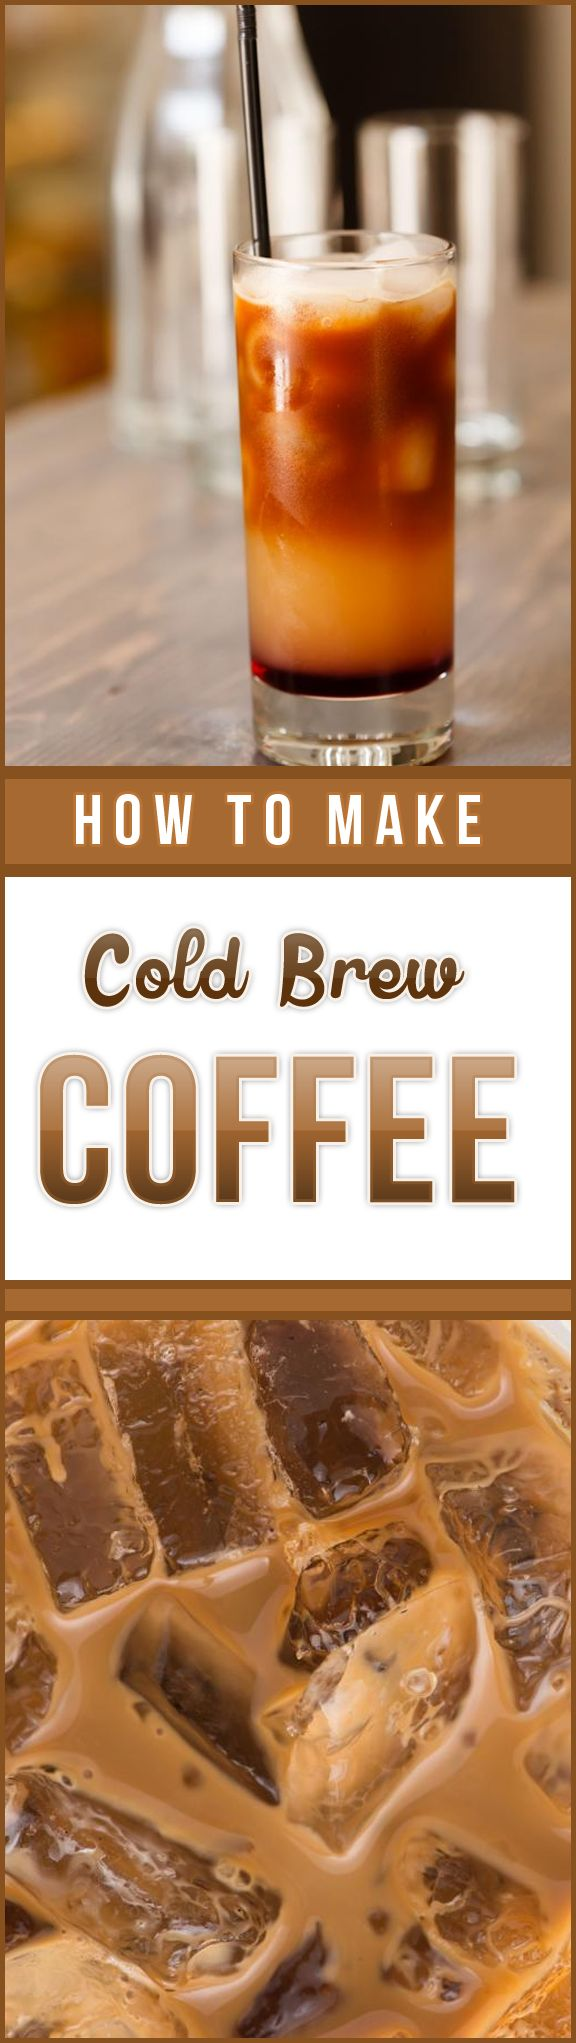 PINNED 91,600 times: Learn how to make cold brew coffee with this step-by-step tutorial and recipe. It's so easy!